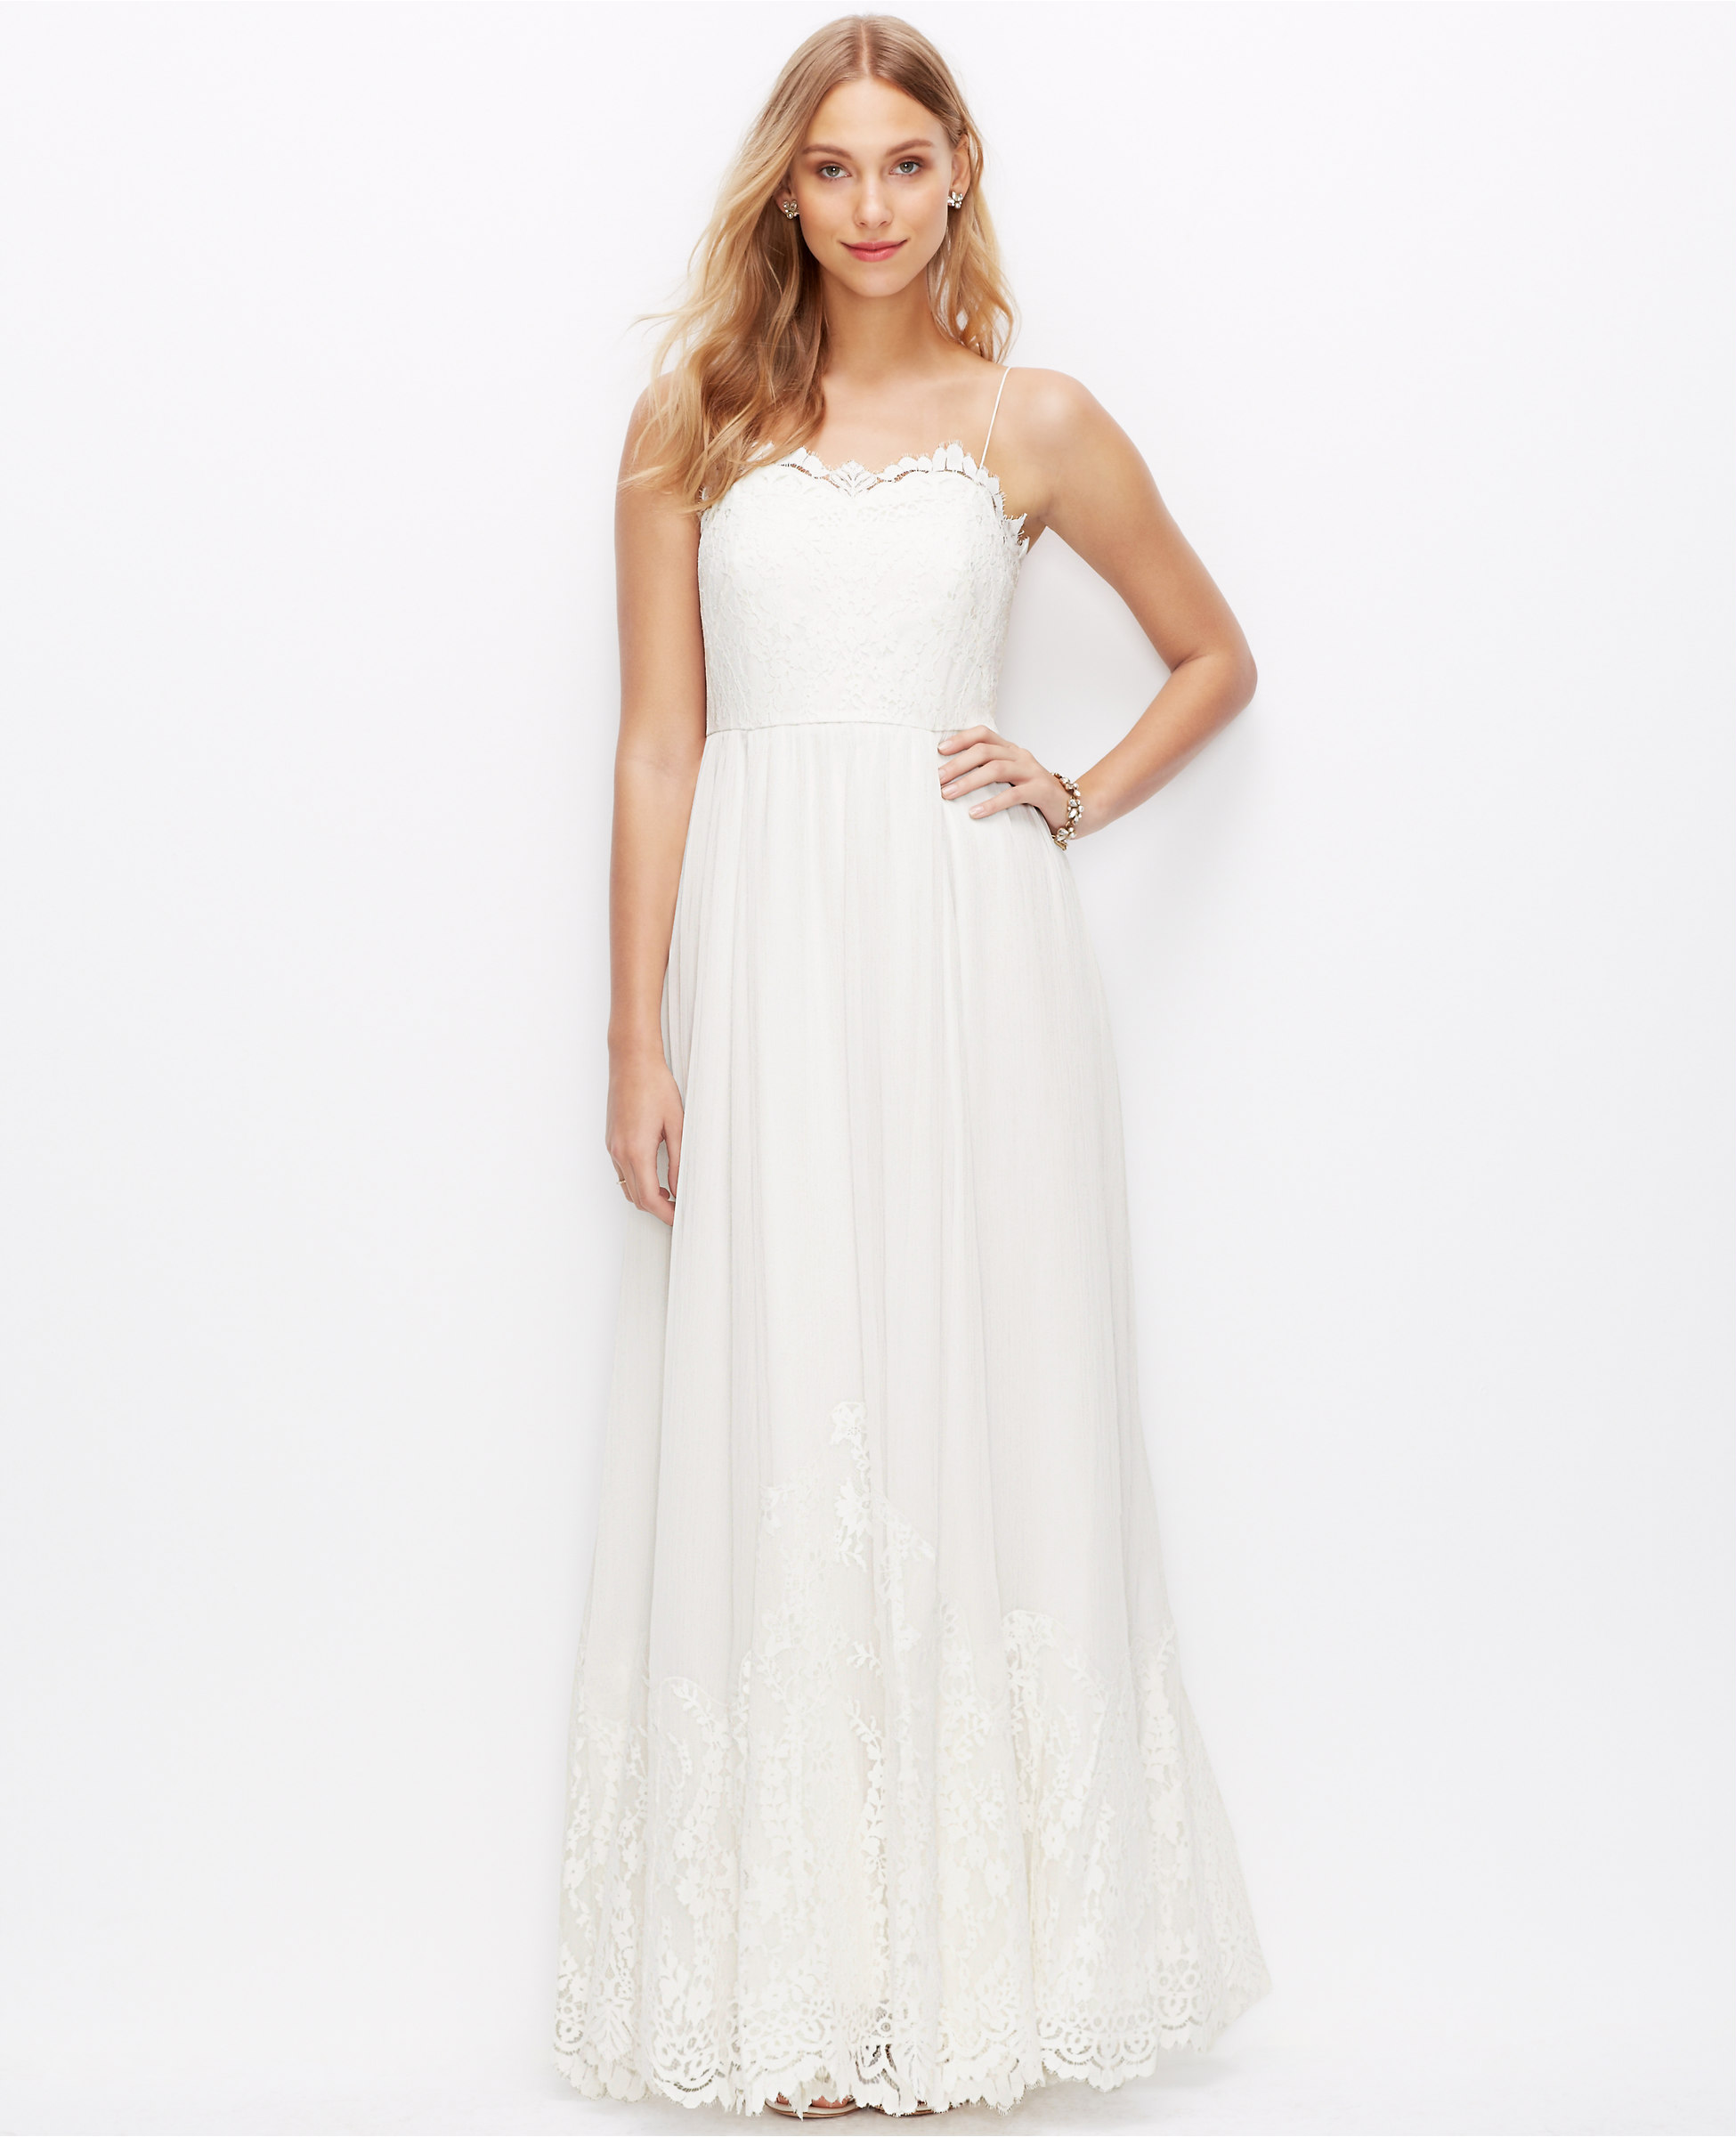 20 Trendiest Wedding Dresses Under $1,000 - EverAfterGuide